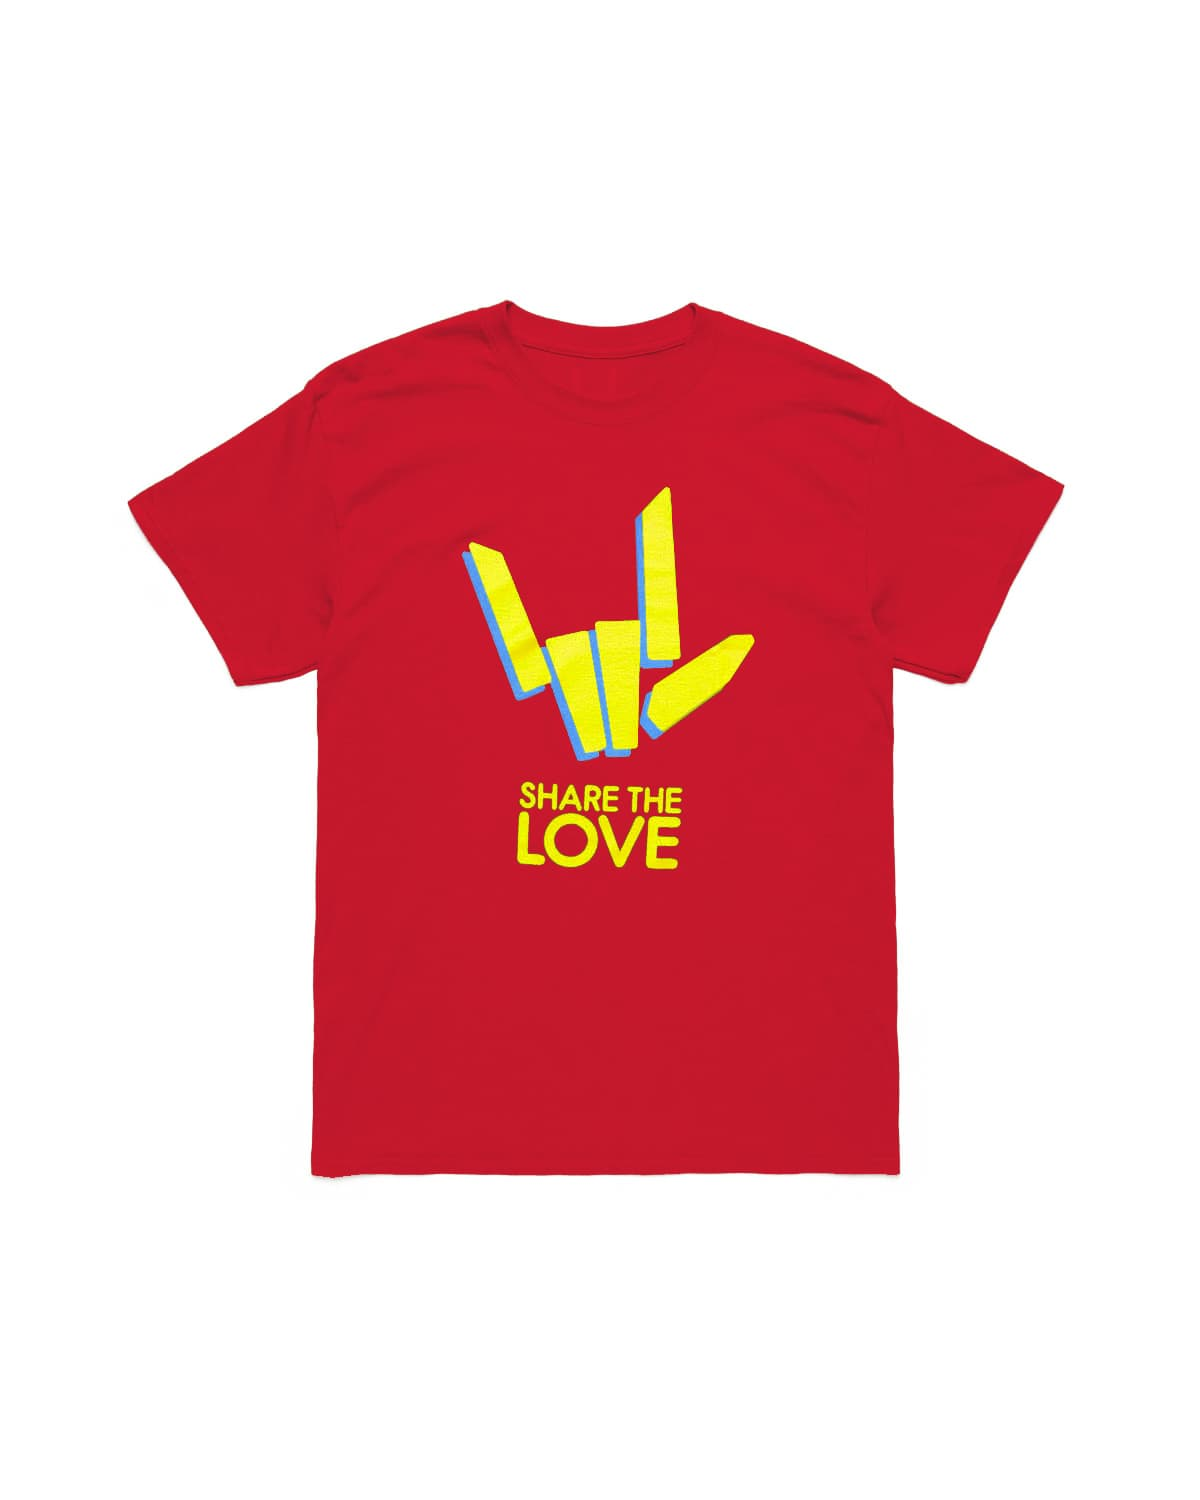 'Share The Love' Tee - Red